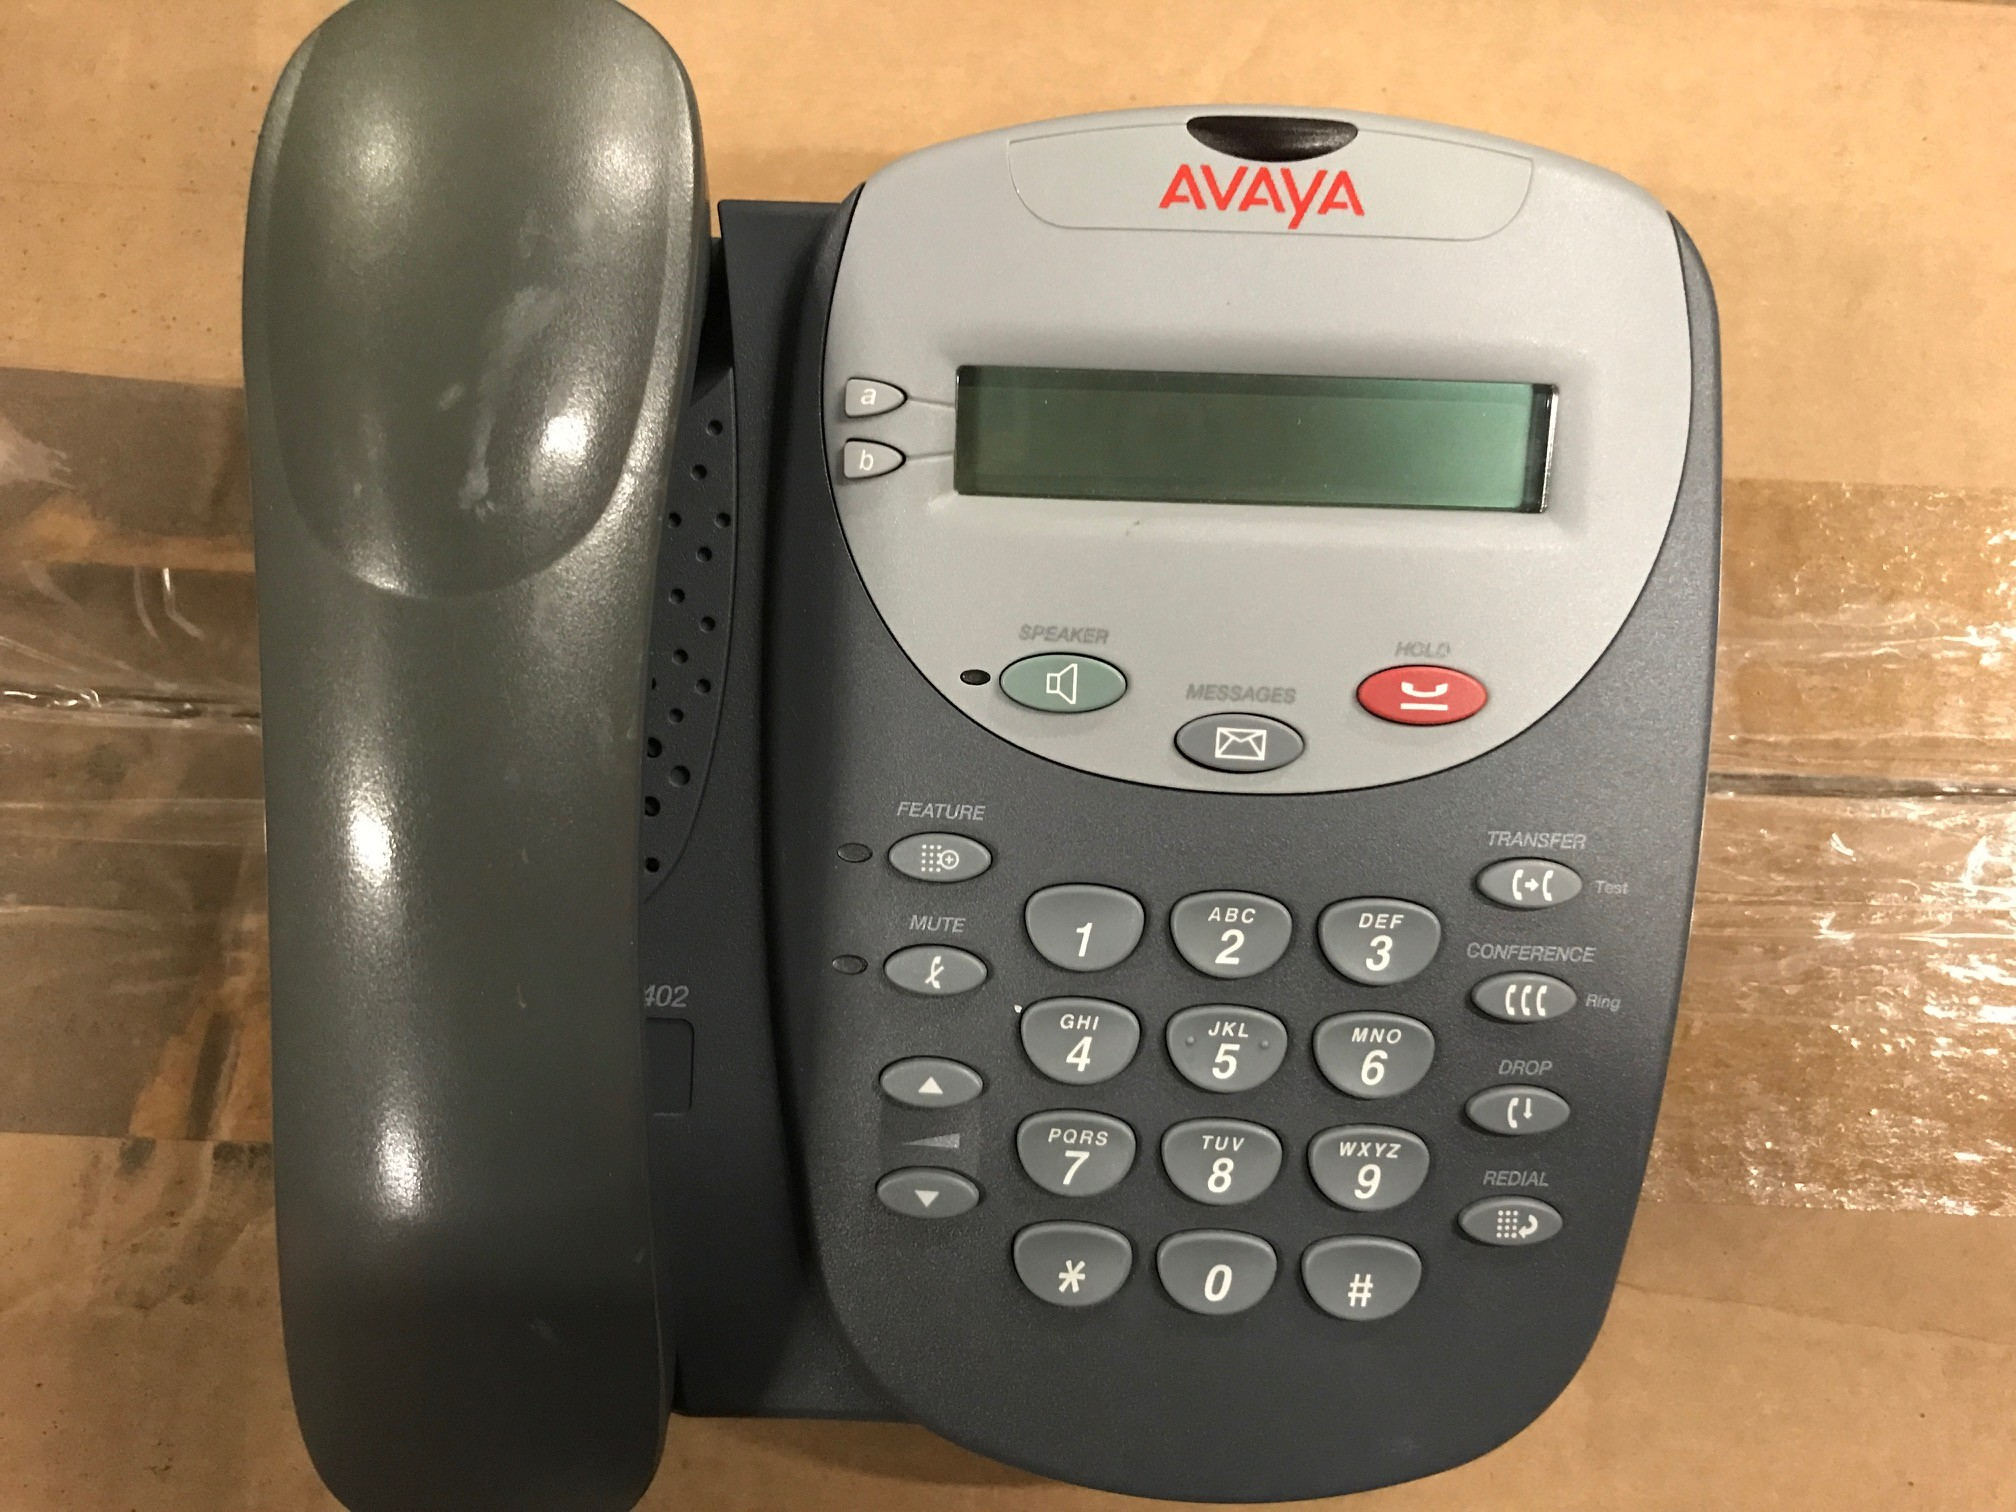 Avaya IP400 5402 PHONES WITH (3) CISCO IP 7940 PHONES, (1)...